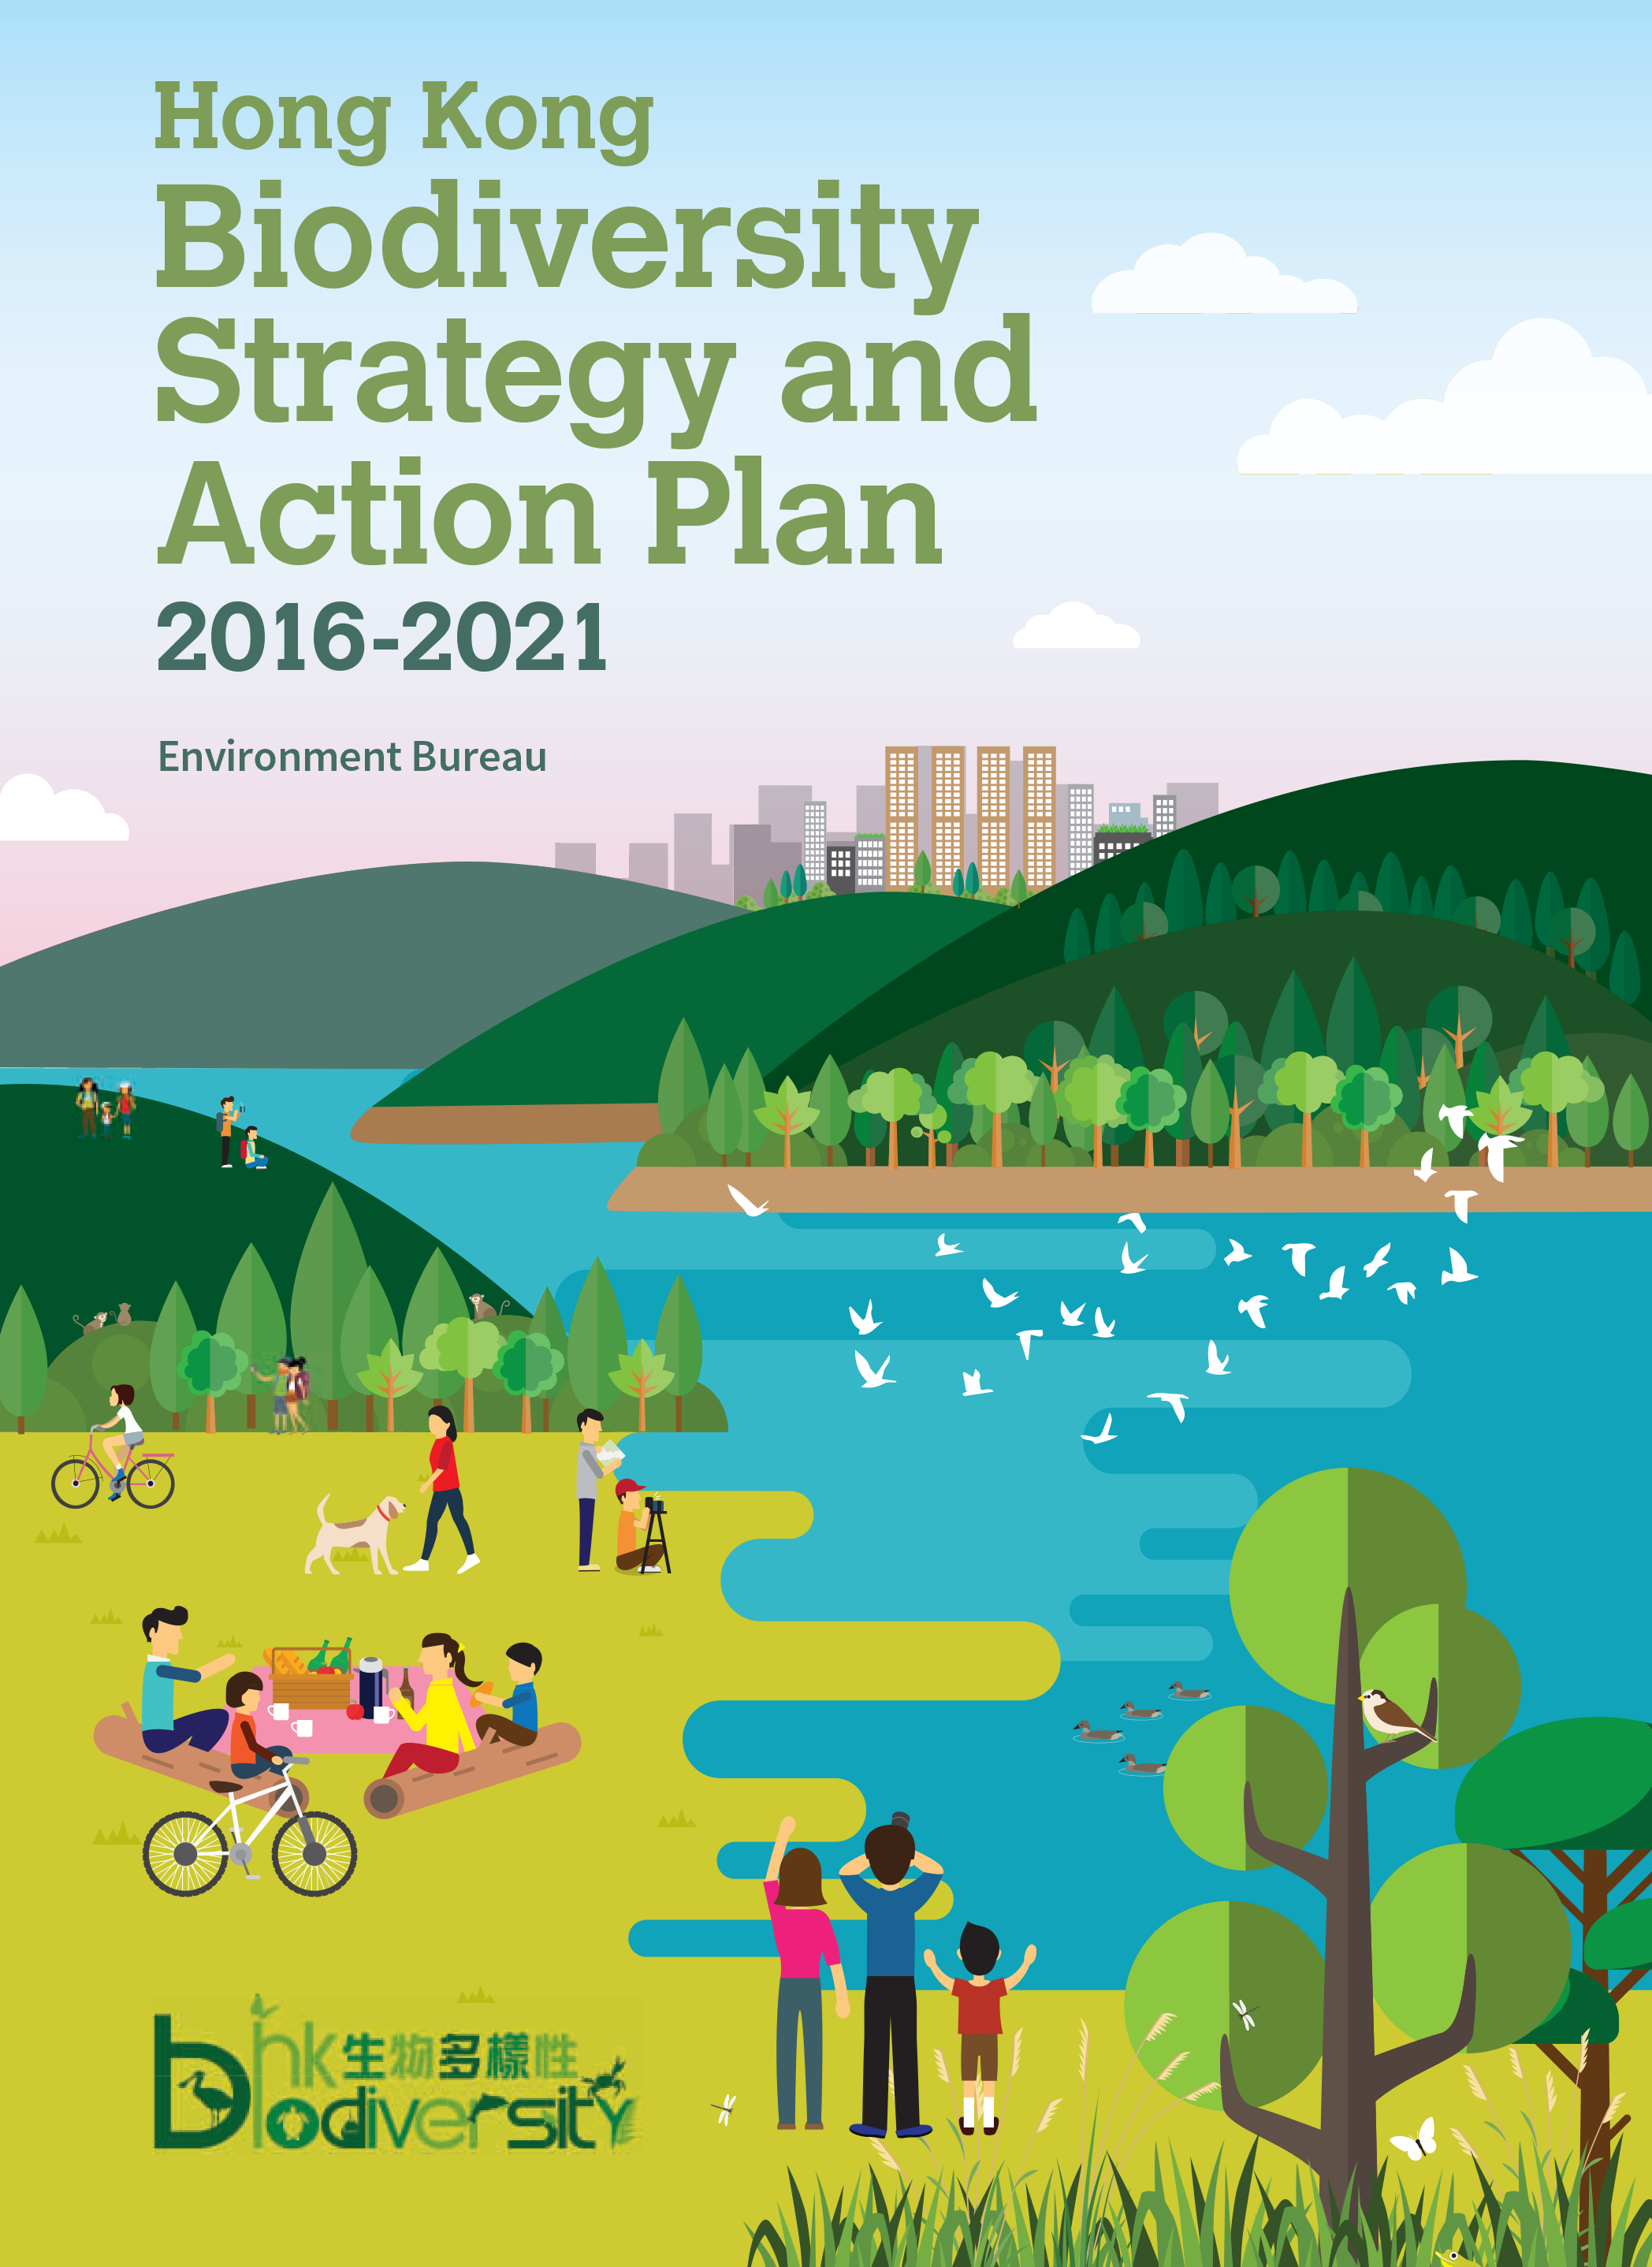 Hong Kong Biodiversity Strategy and Action Plan 2016-2021